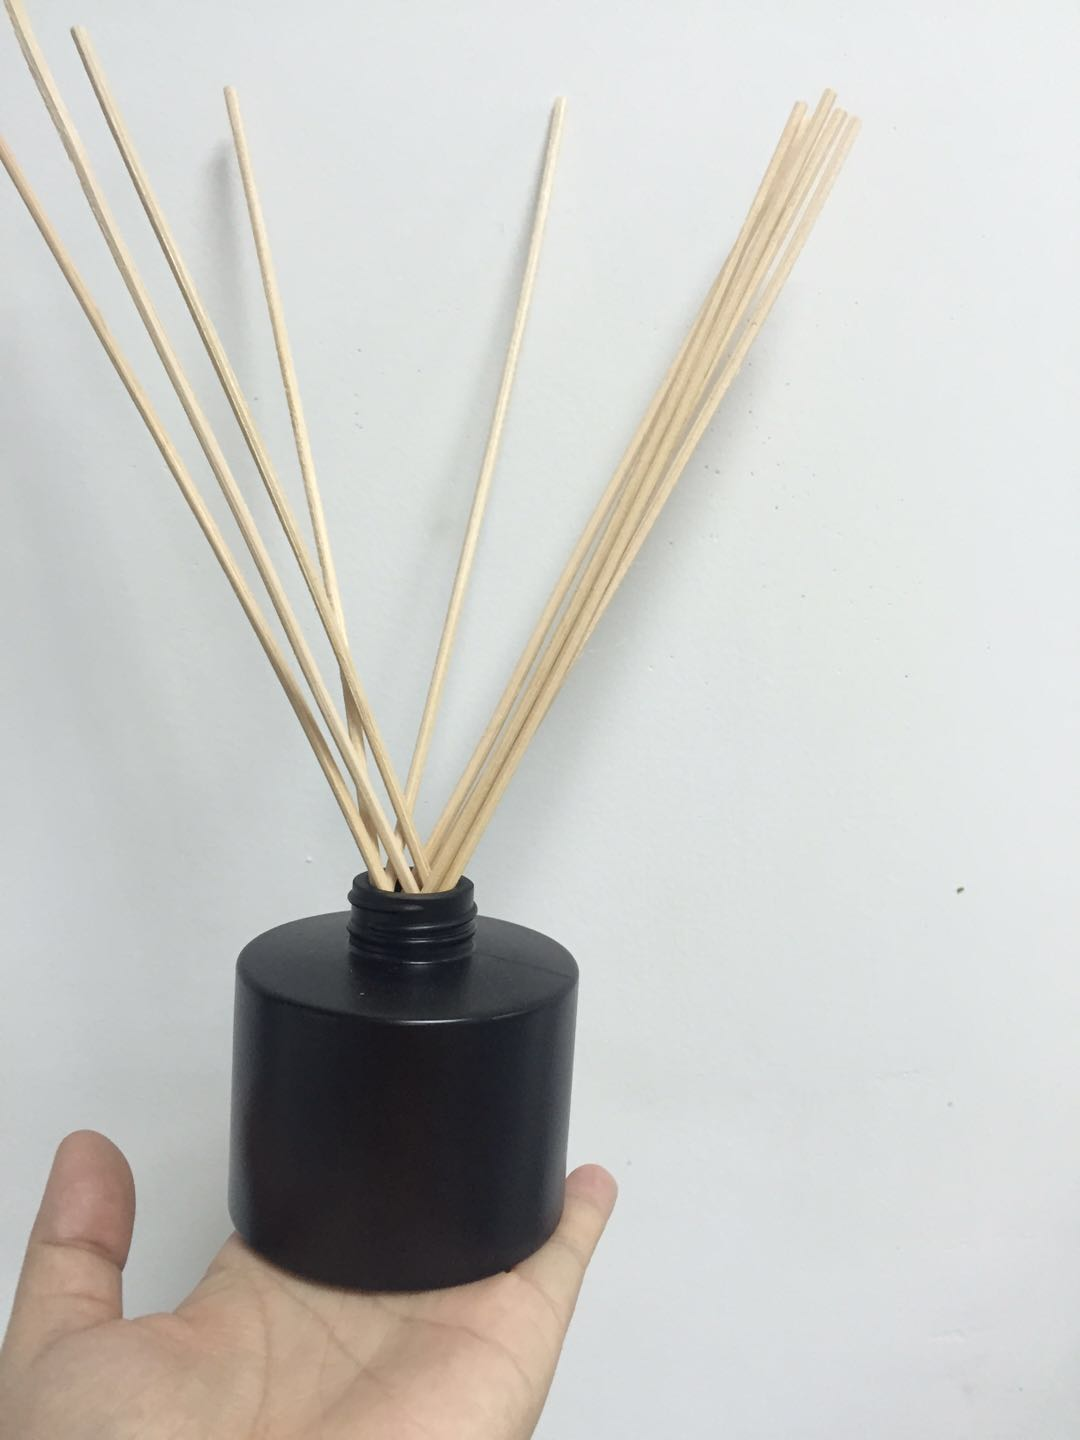 120ml reed diffuser bottle in stock